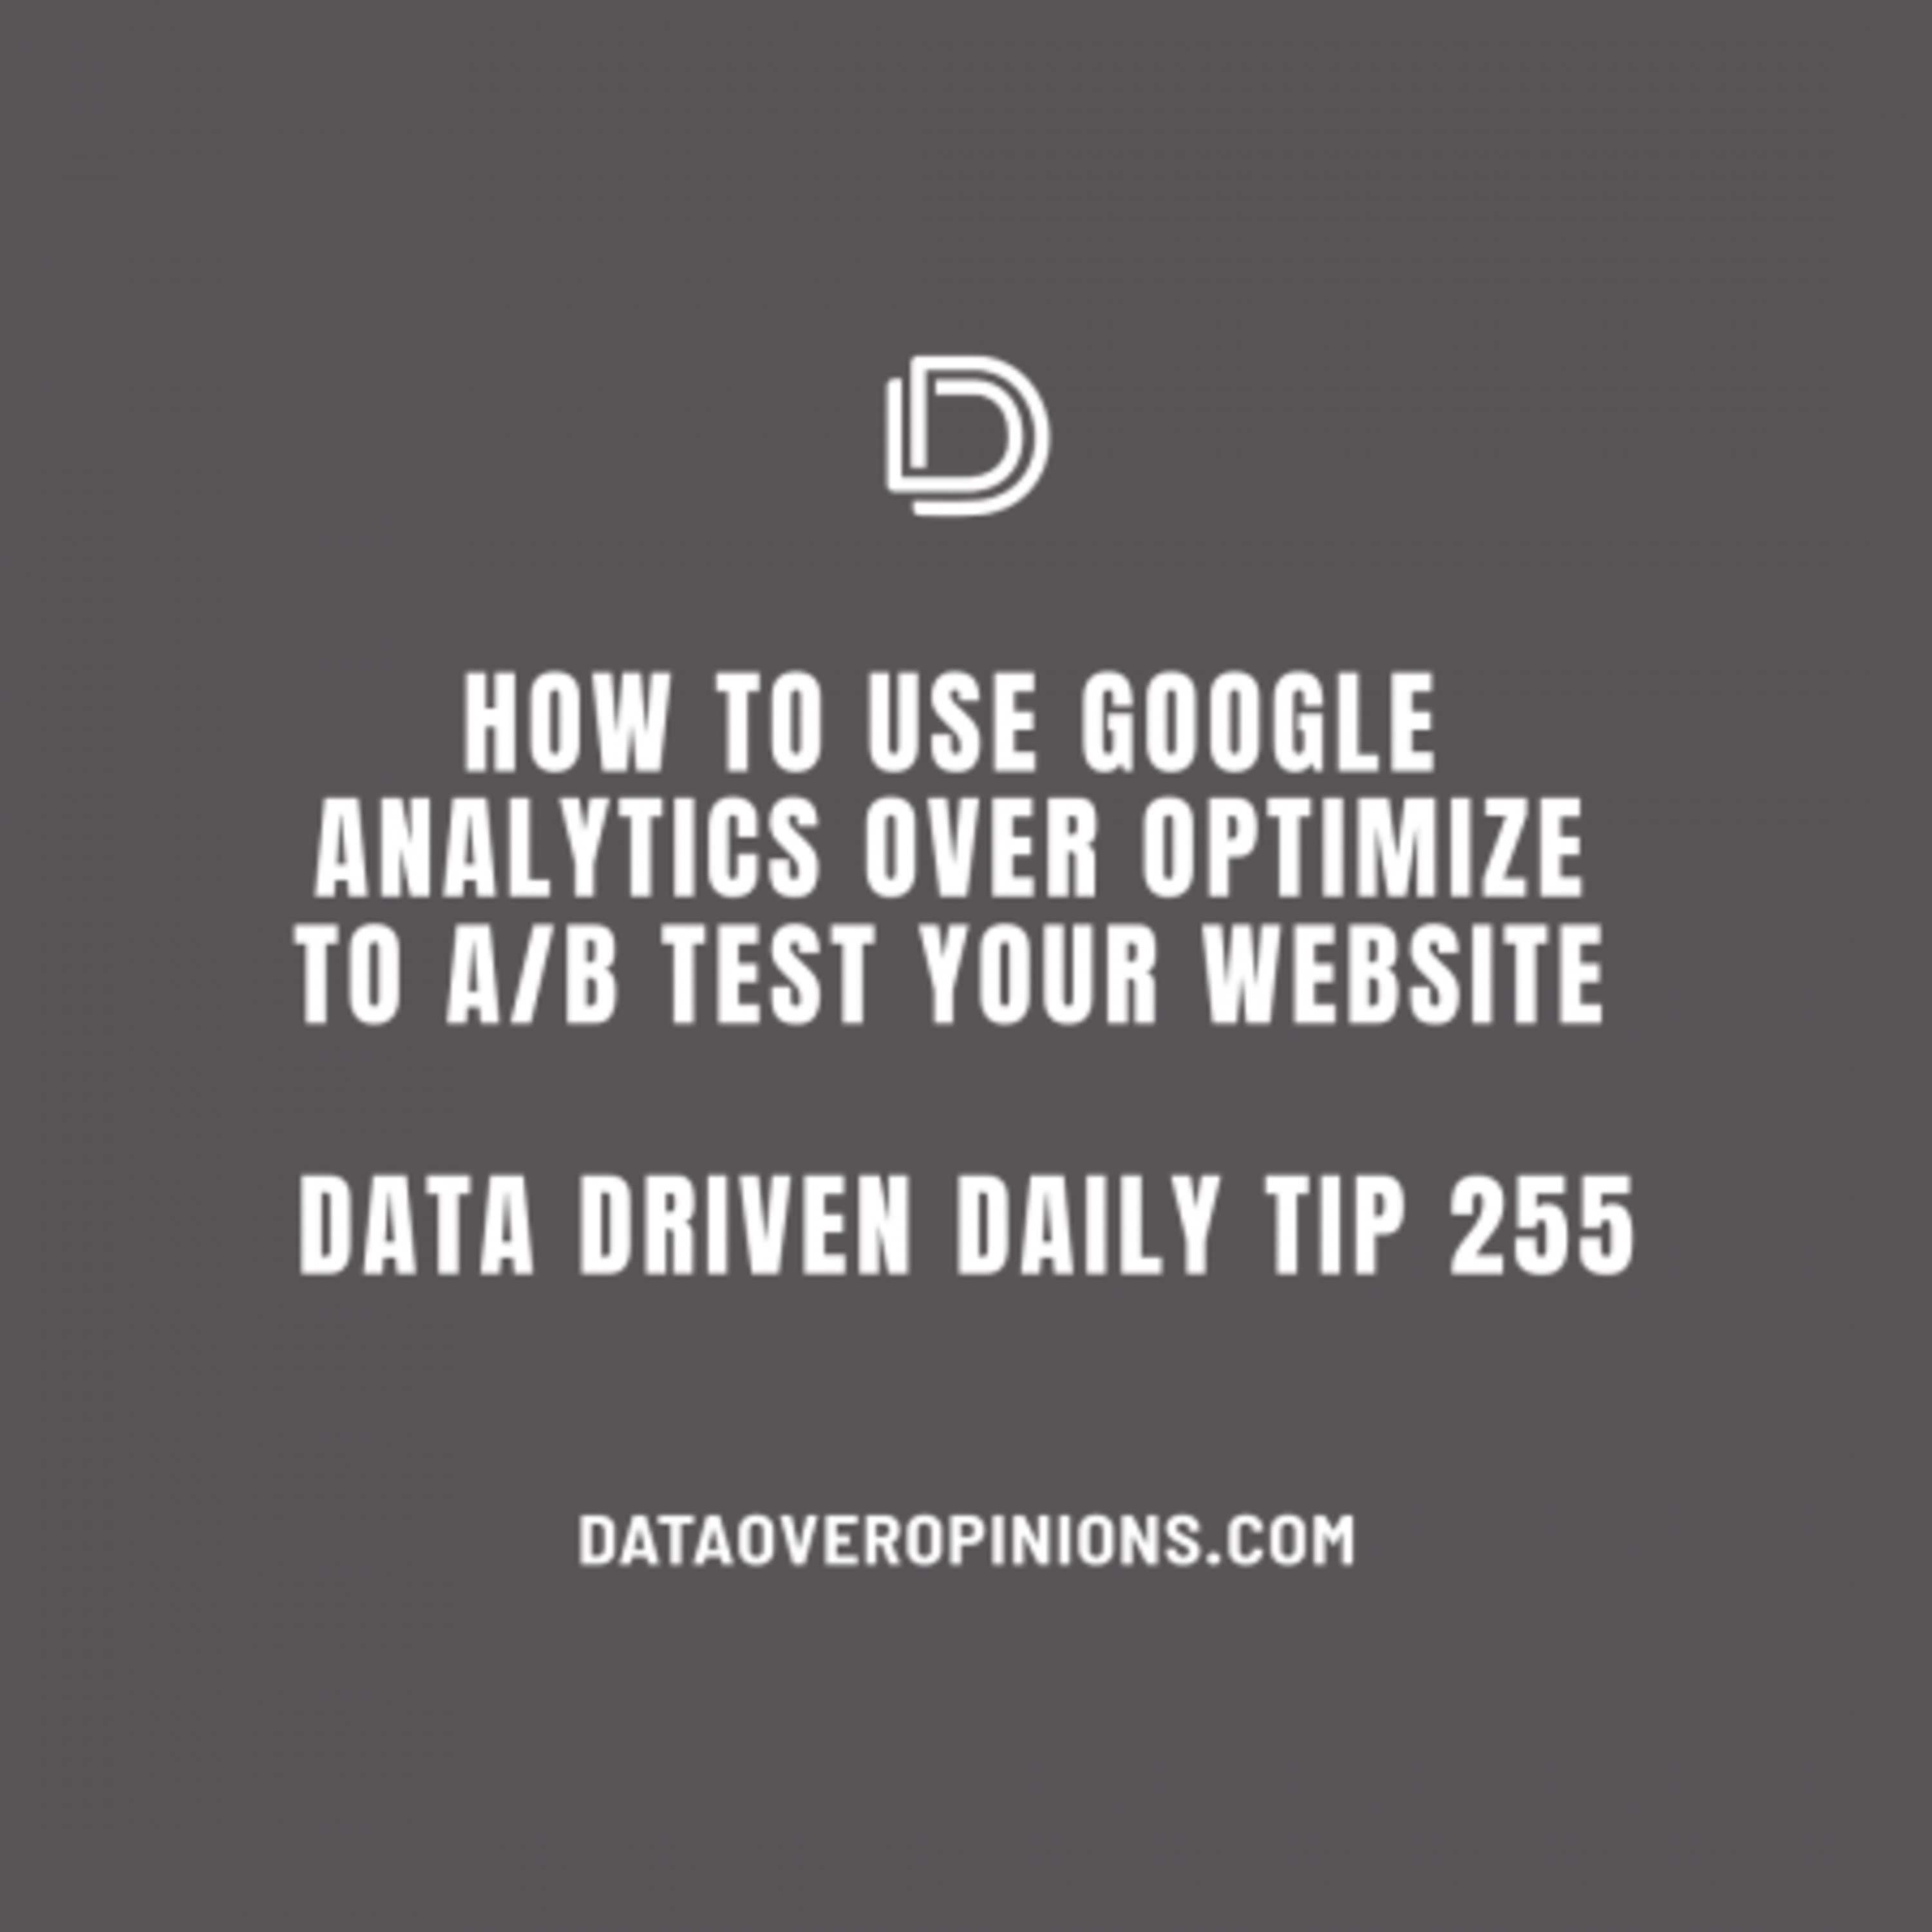 Ep.133: How To Use Google Analytics Over Optimize To A/B Test Your Website: Data Driven Daily Tip 255